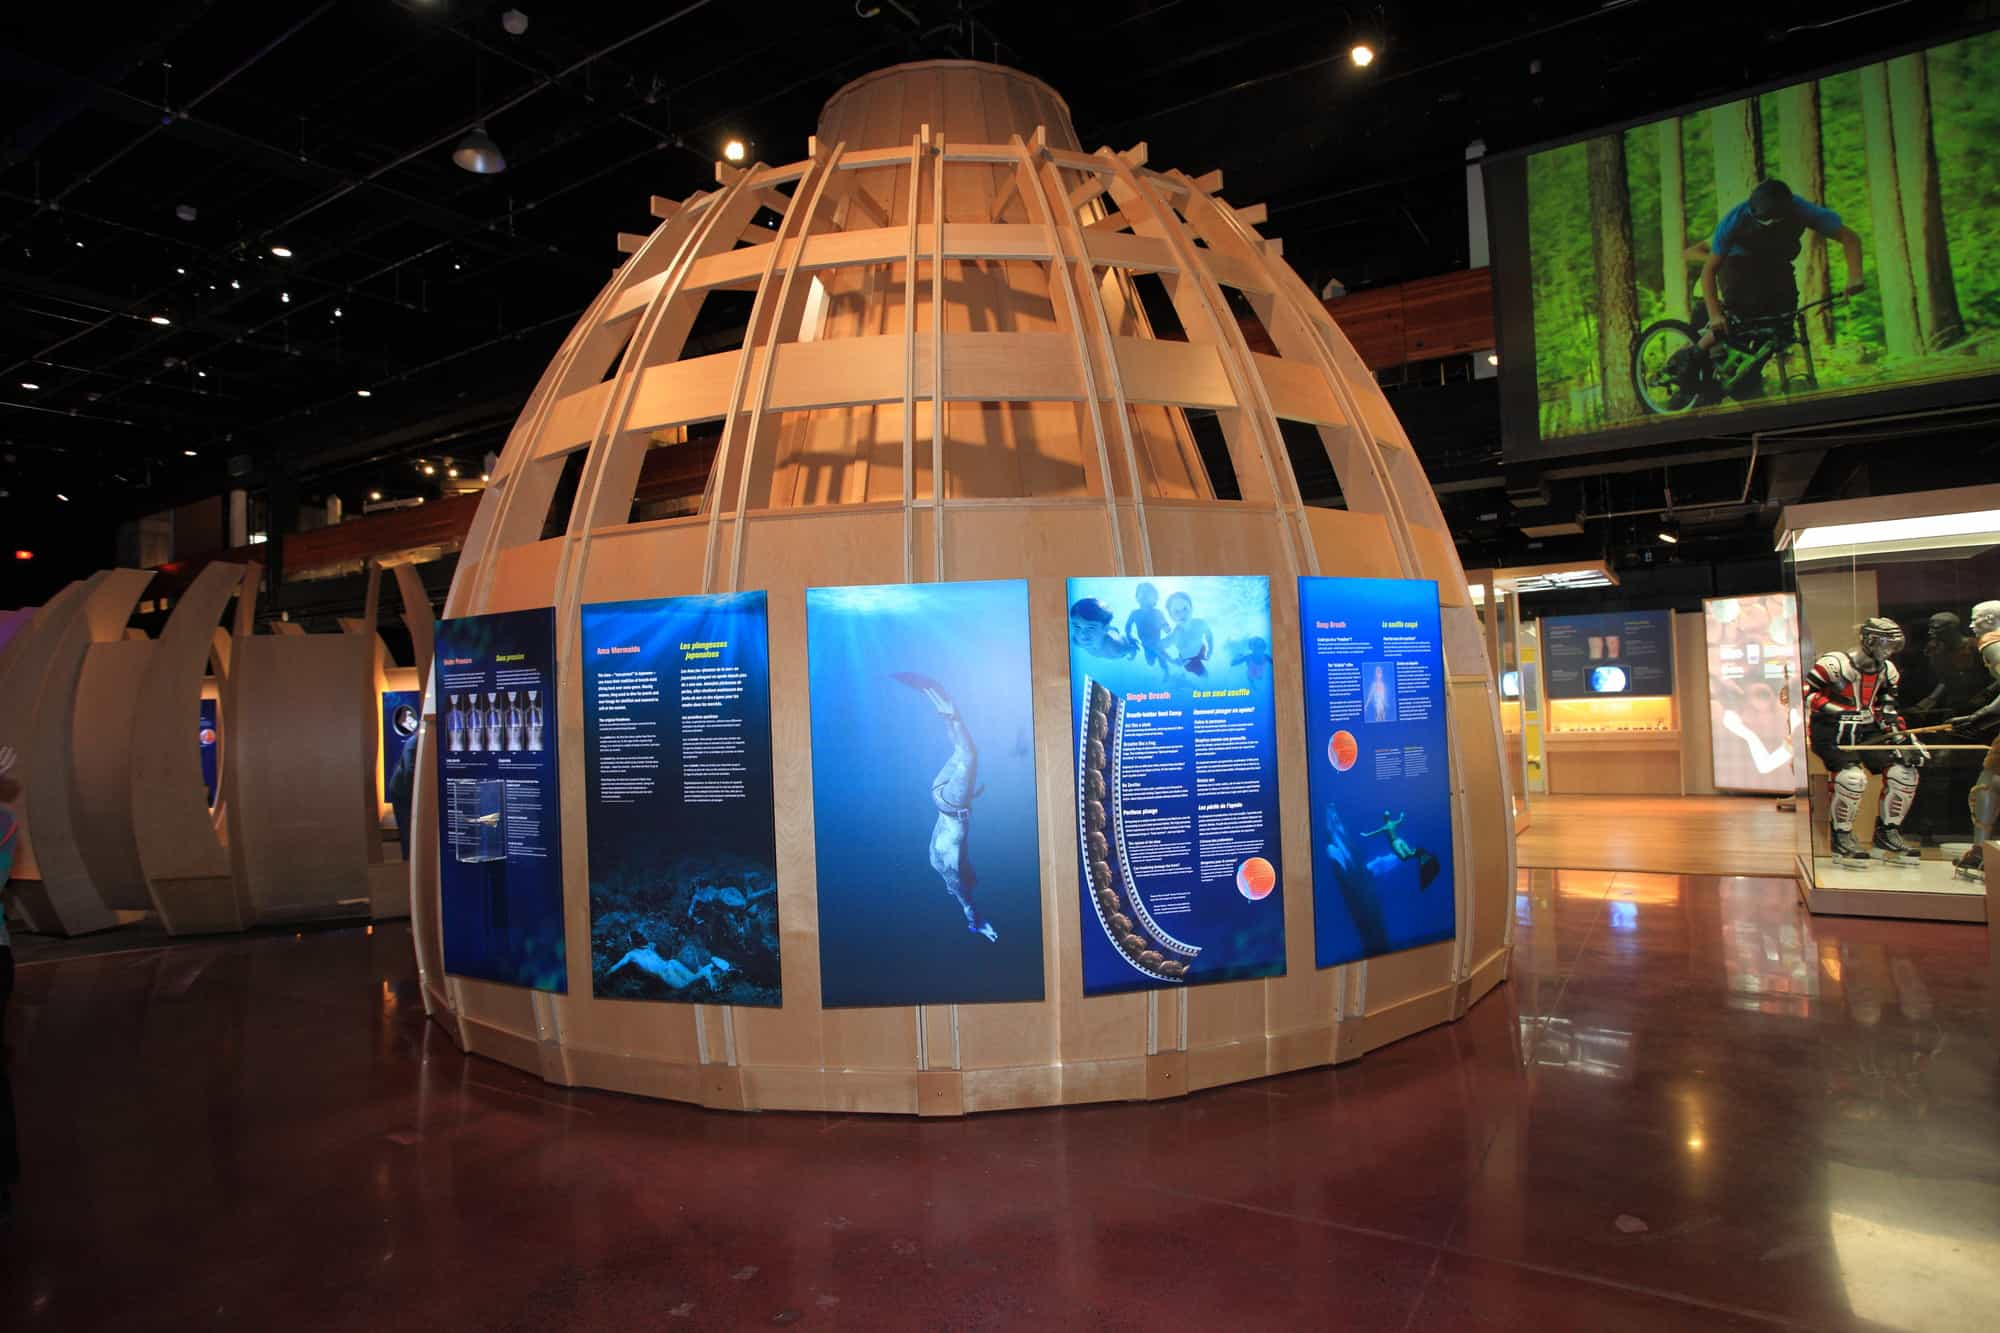 Exploring the Ins and Outs of The Human Body at the Ontario Science Centre